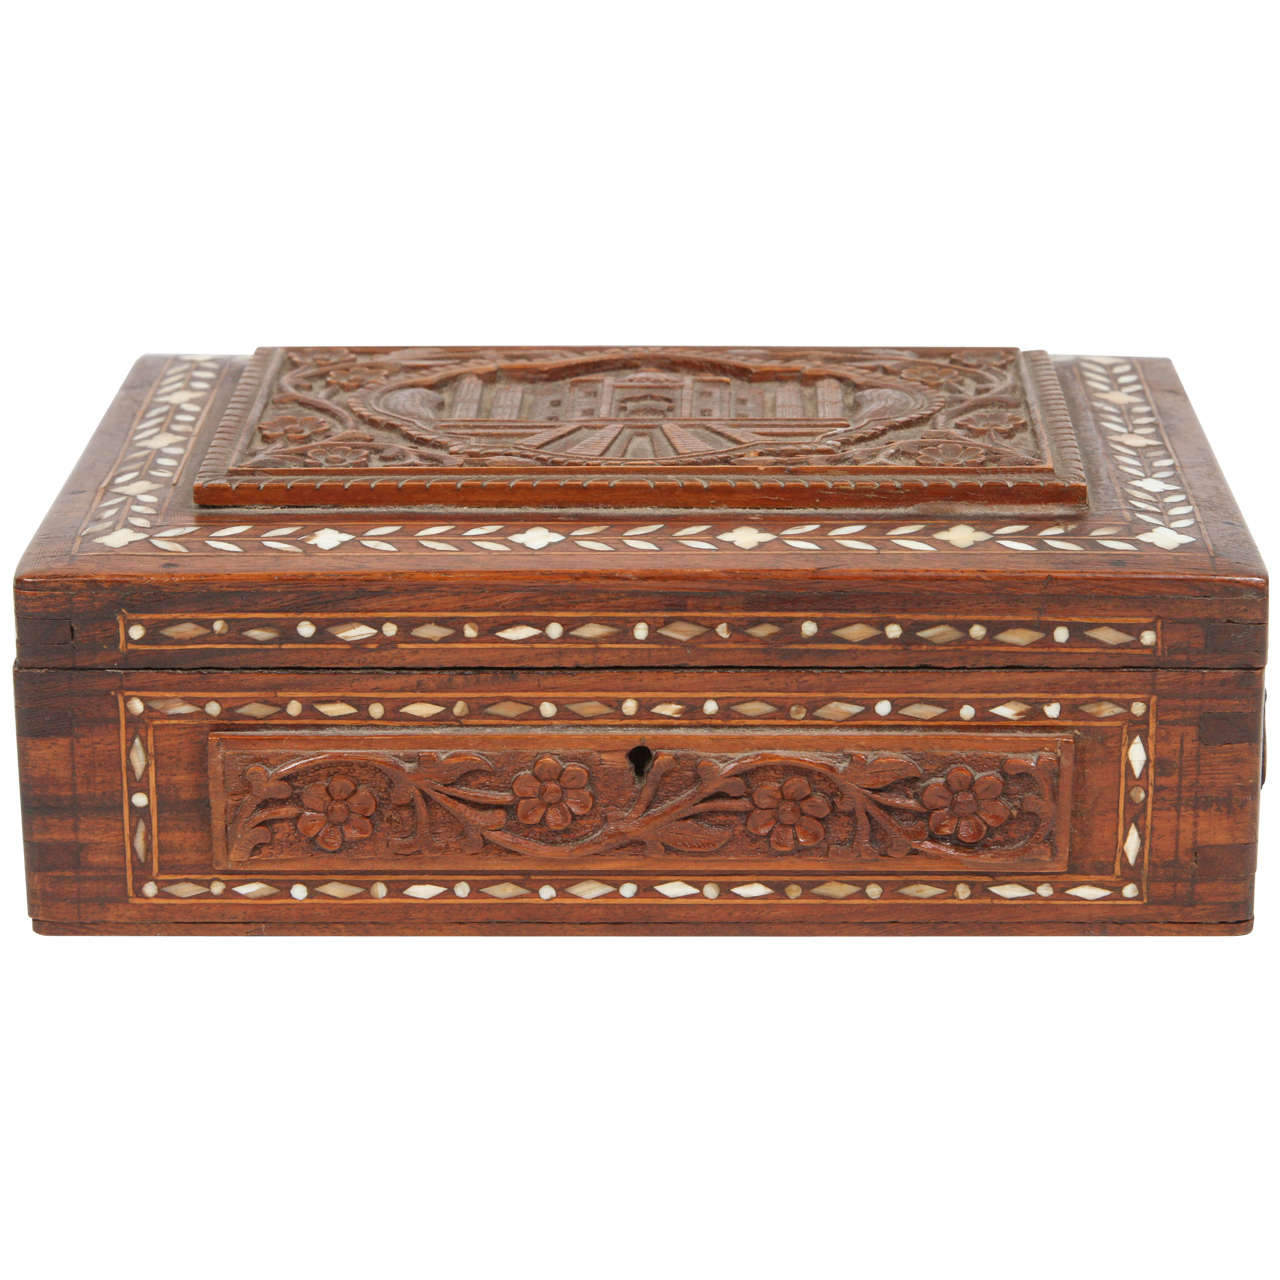 19th Century Anglo-Indian Box